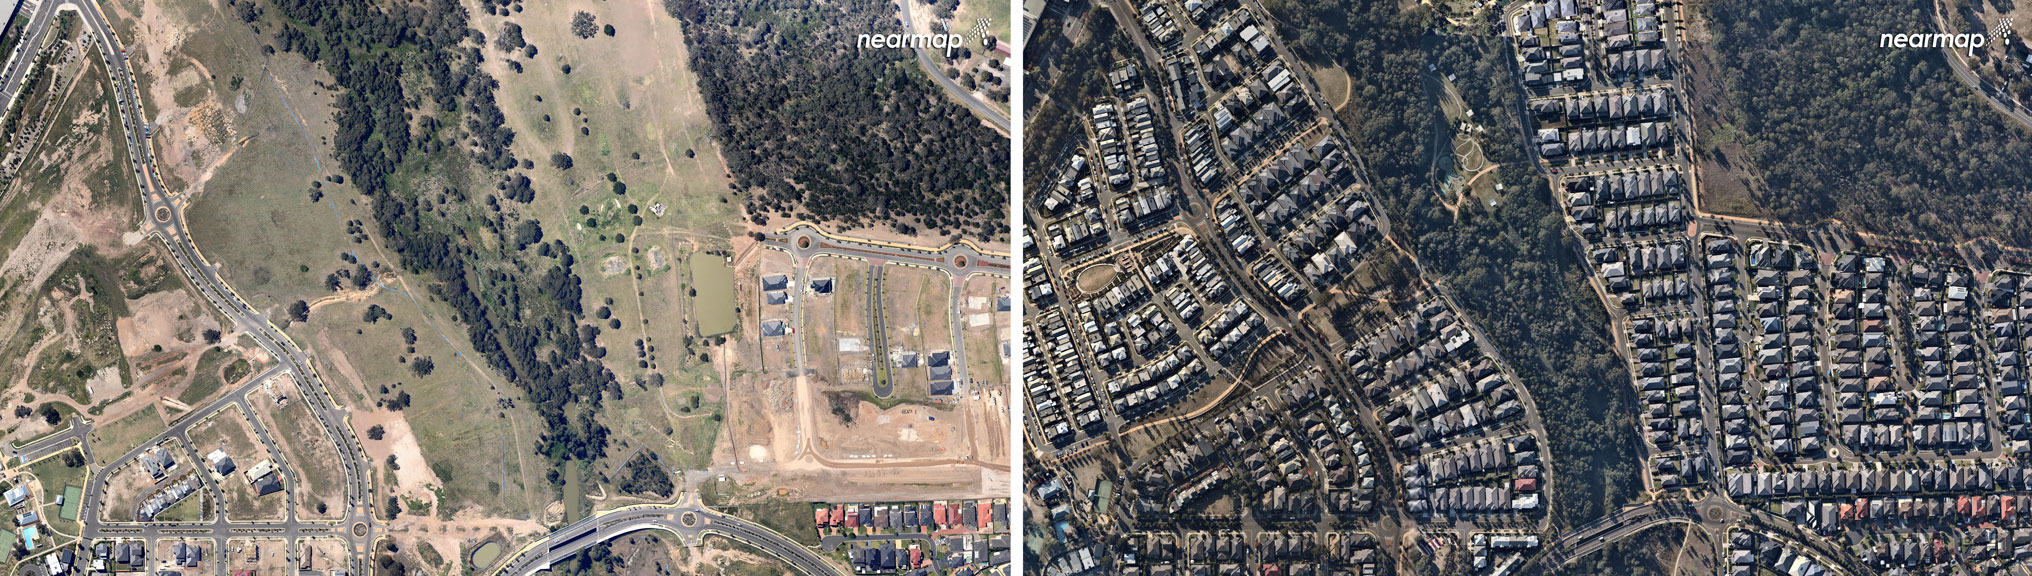 Rouse Hill, October 2009 (left), Rouse Hill, May 2018 (right).